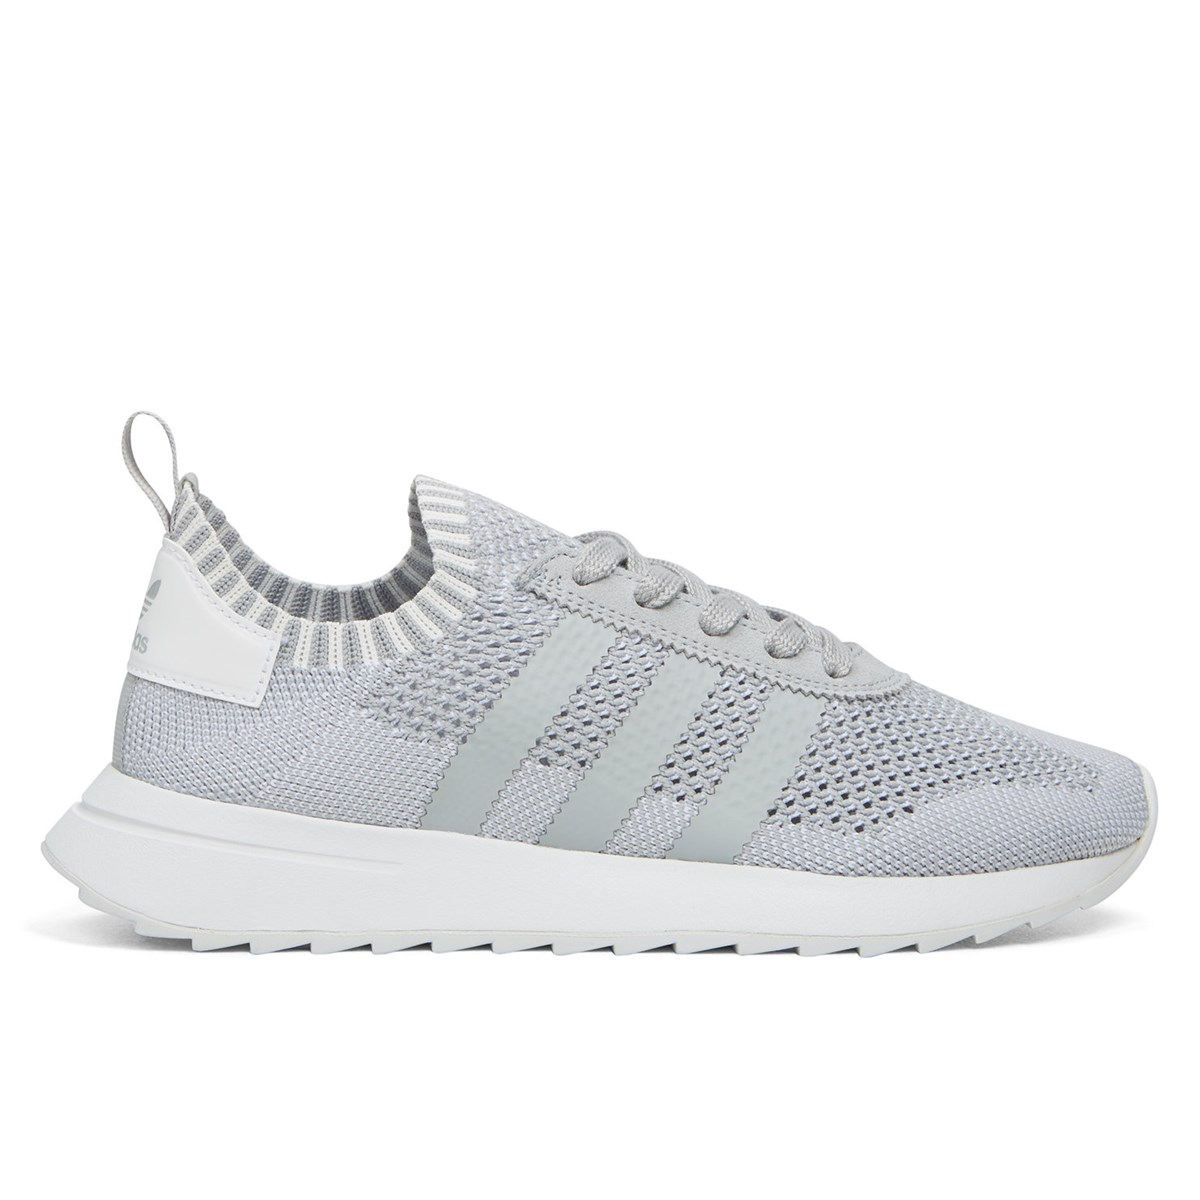 Women's Flashback Primeknit Grey Sneakers